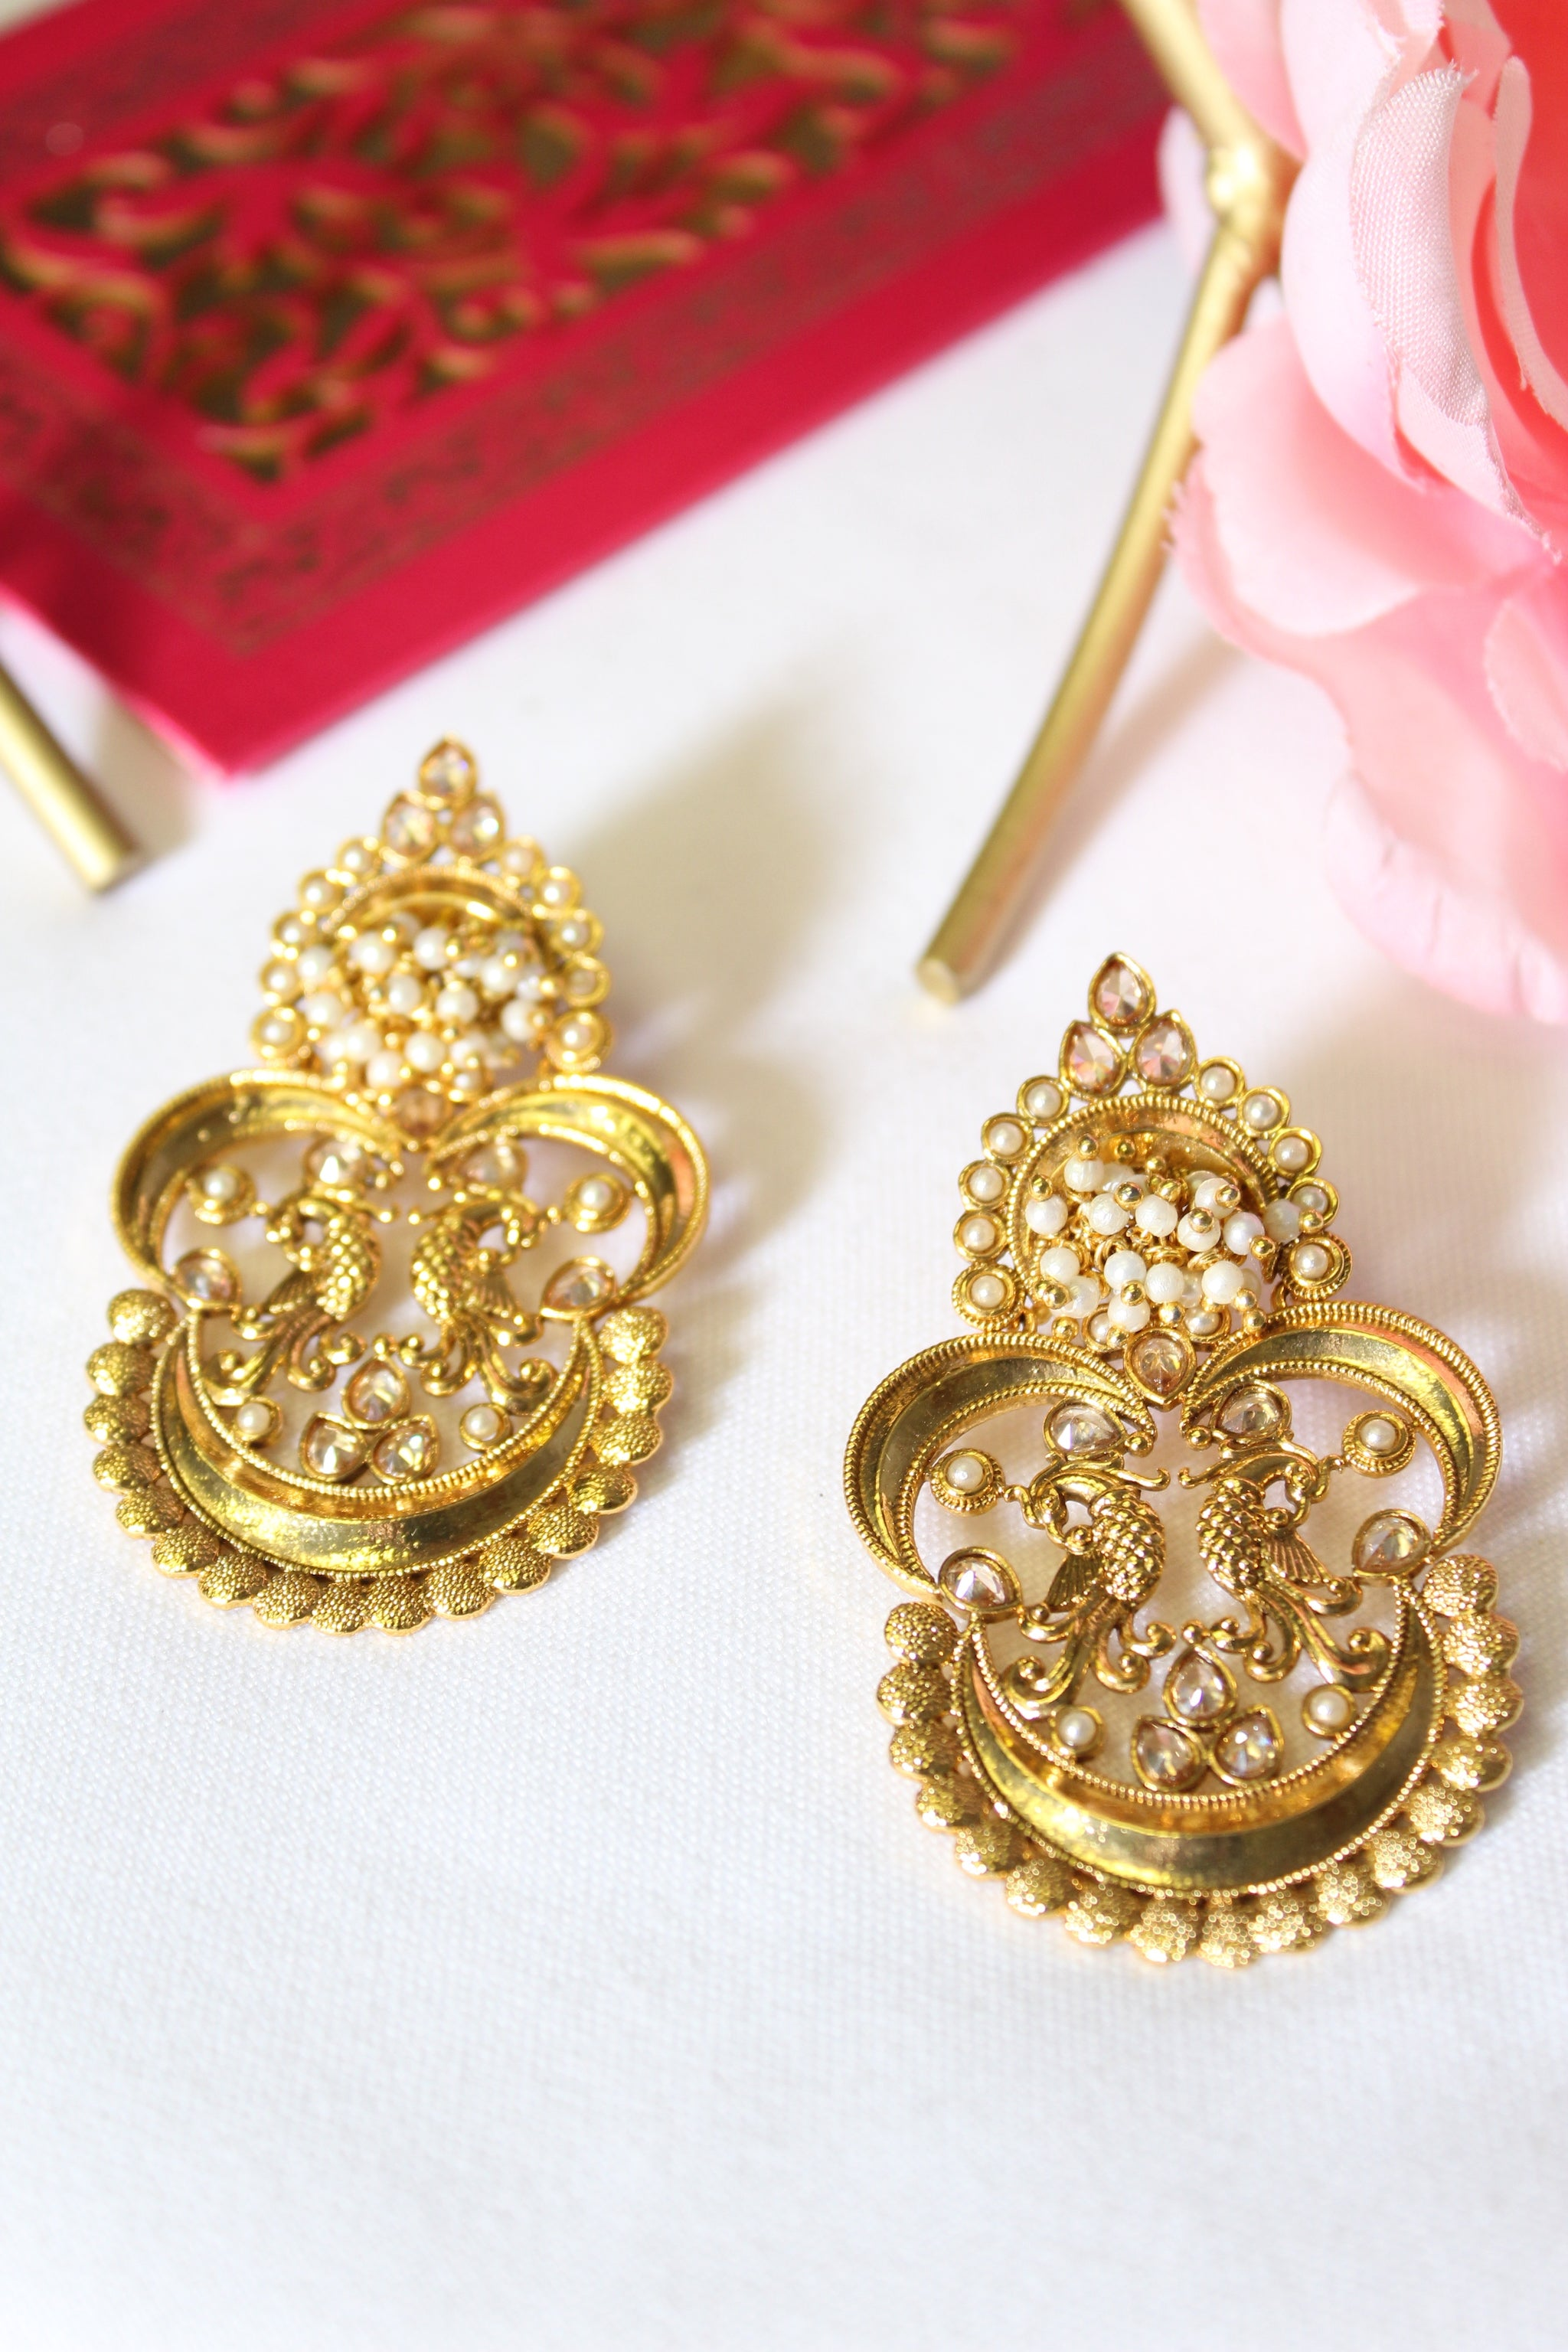 Peacock motif gold plated earrings studded with pearls